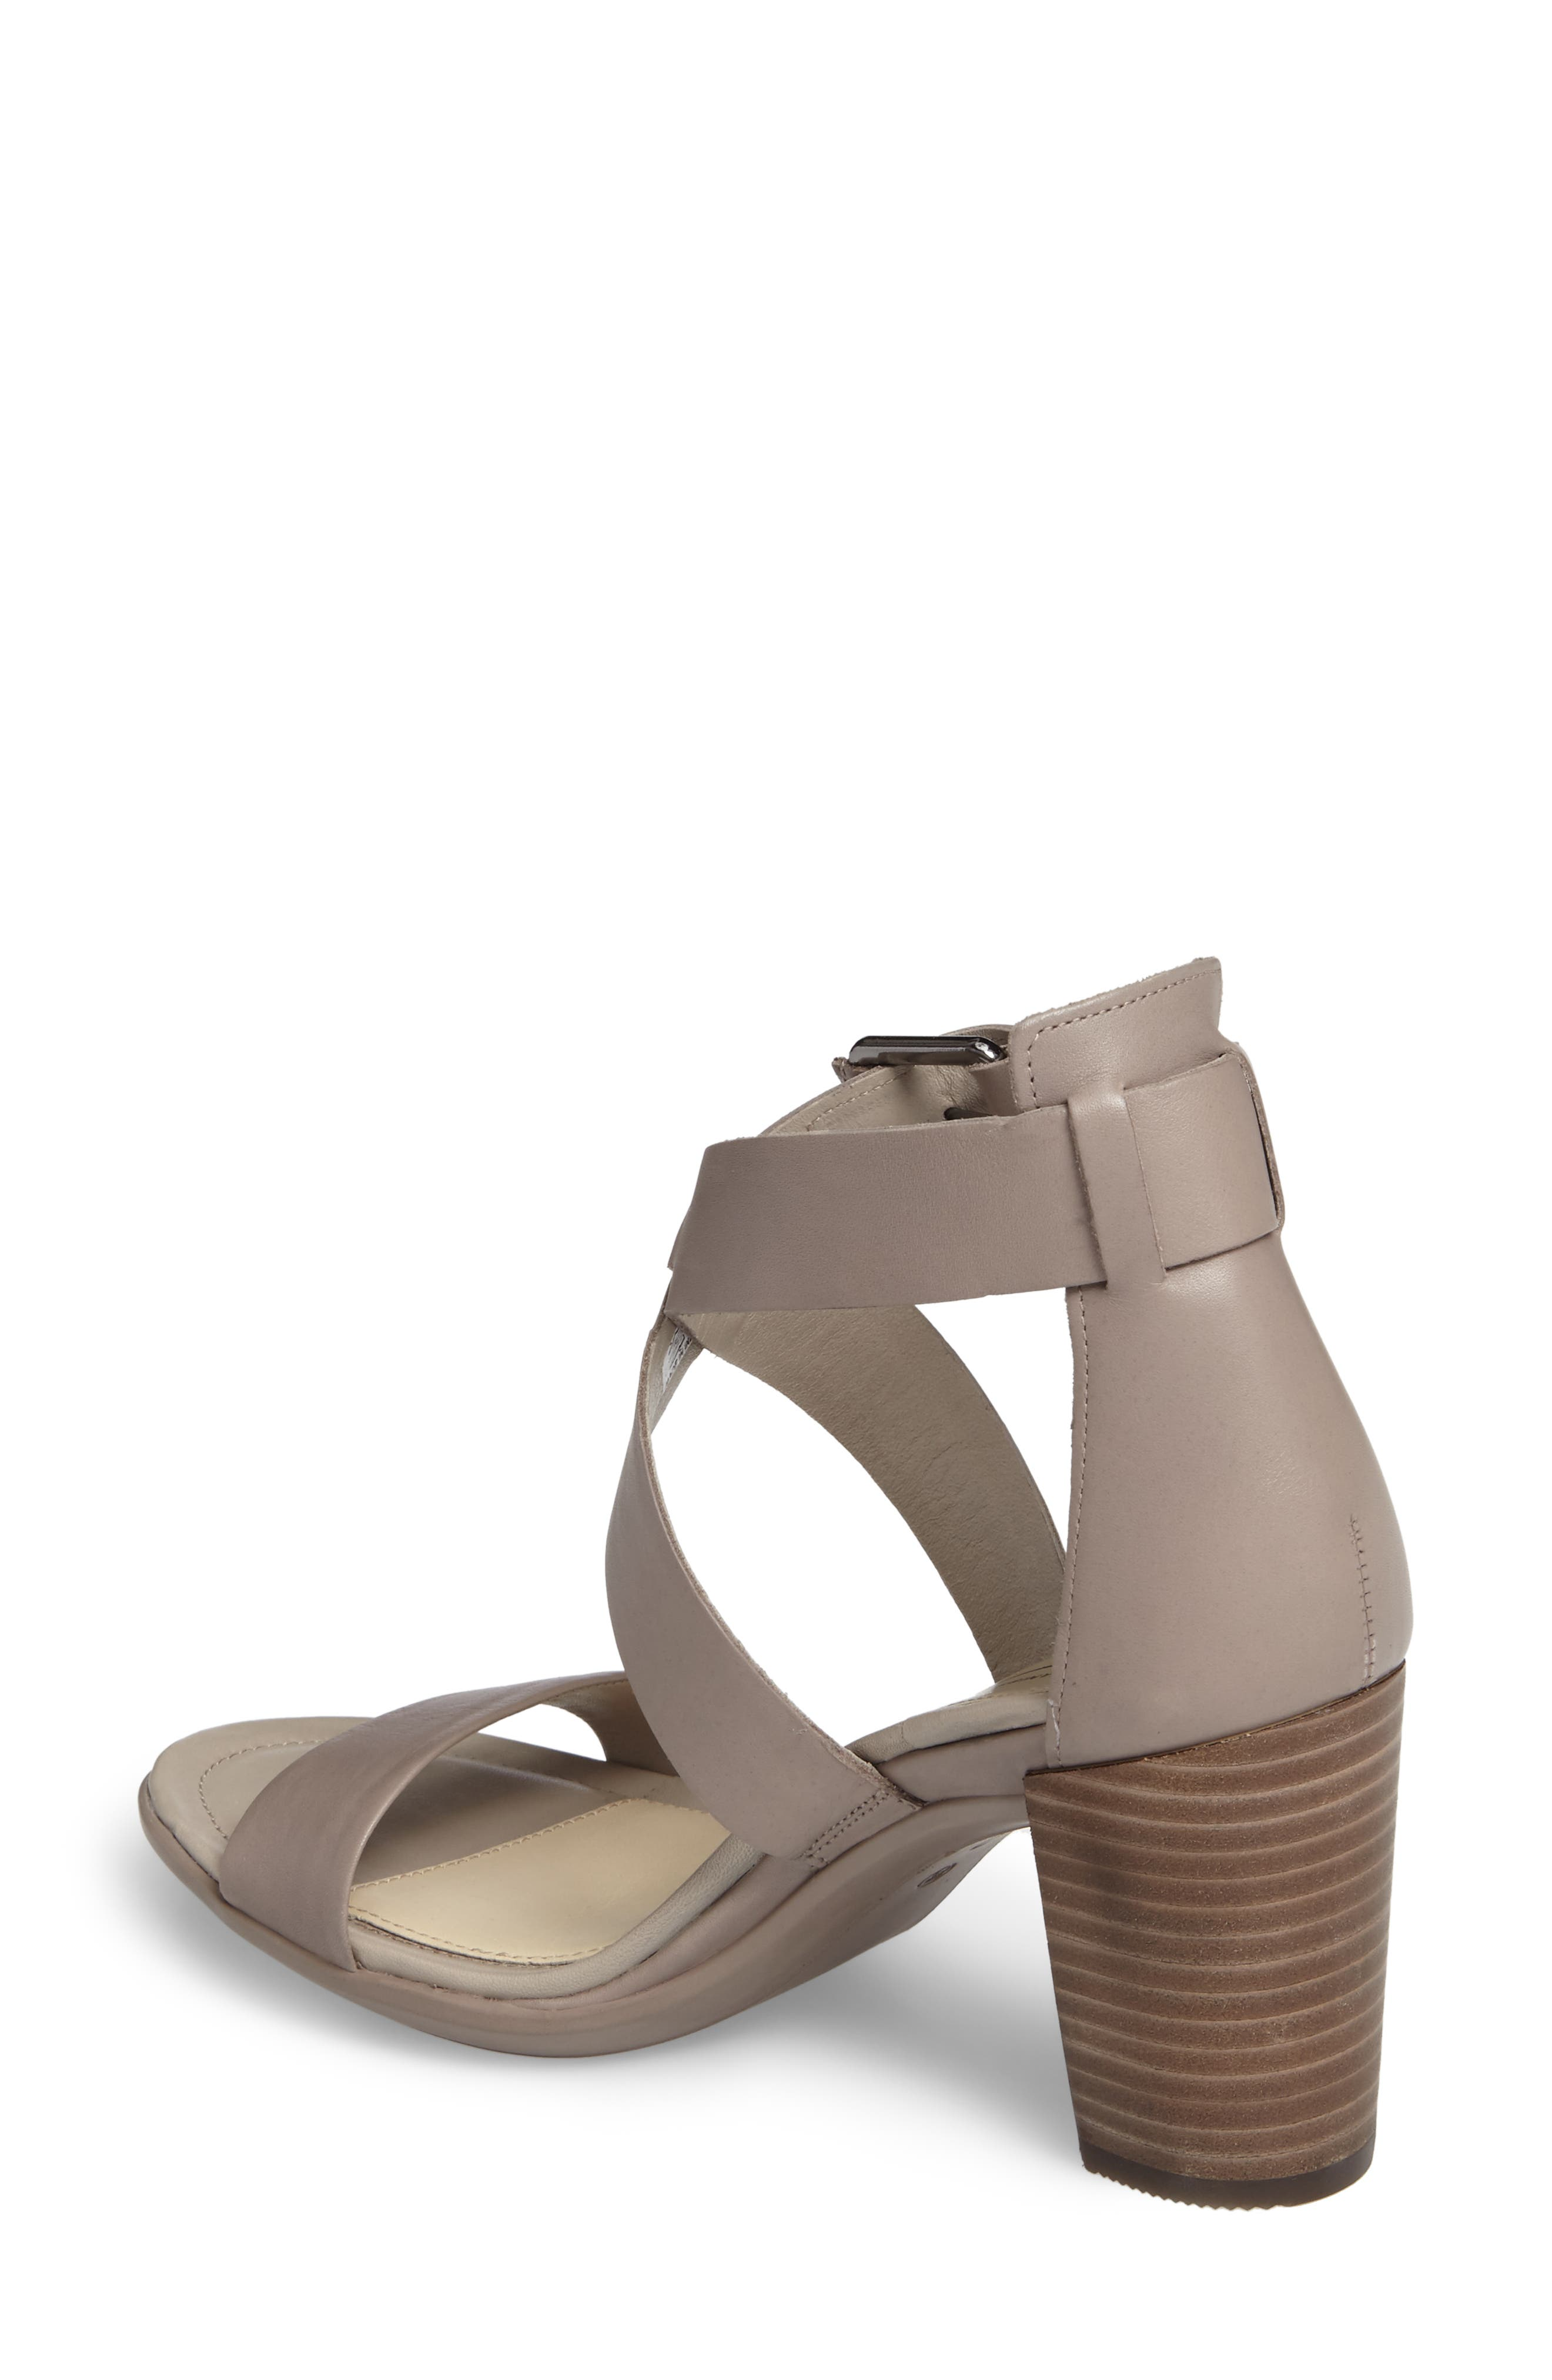 Touch 65 Sandal,                             Alternate thumbnail 2, color,                             Moon Rock Leather